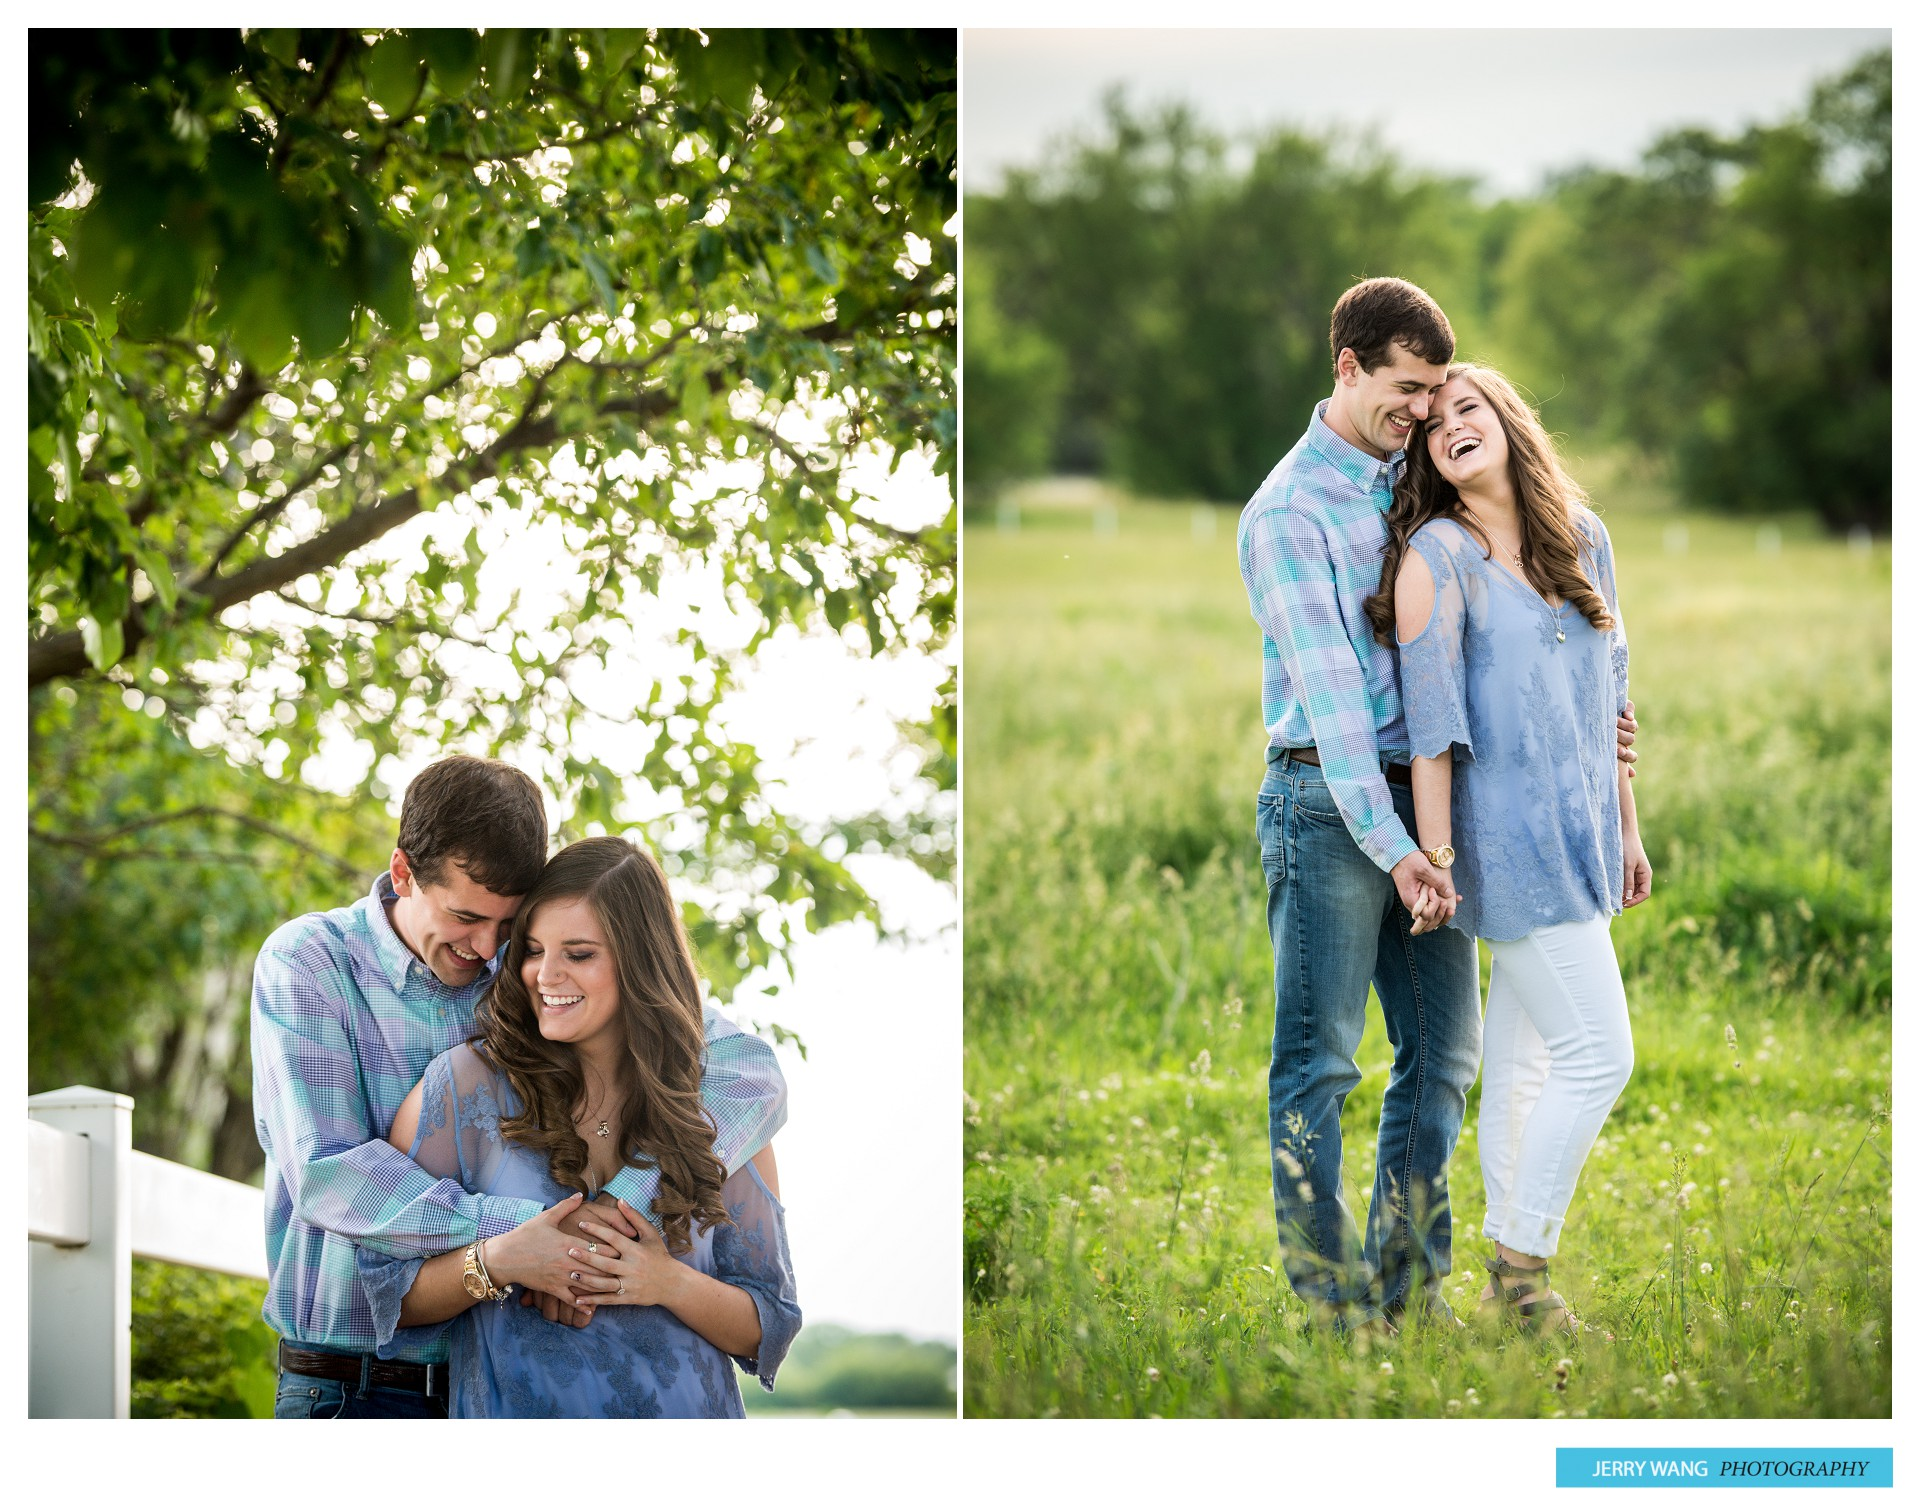 S&B_Spring_Hills_Kansas_Hickory_Creek_Engagement_Session 1